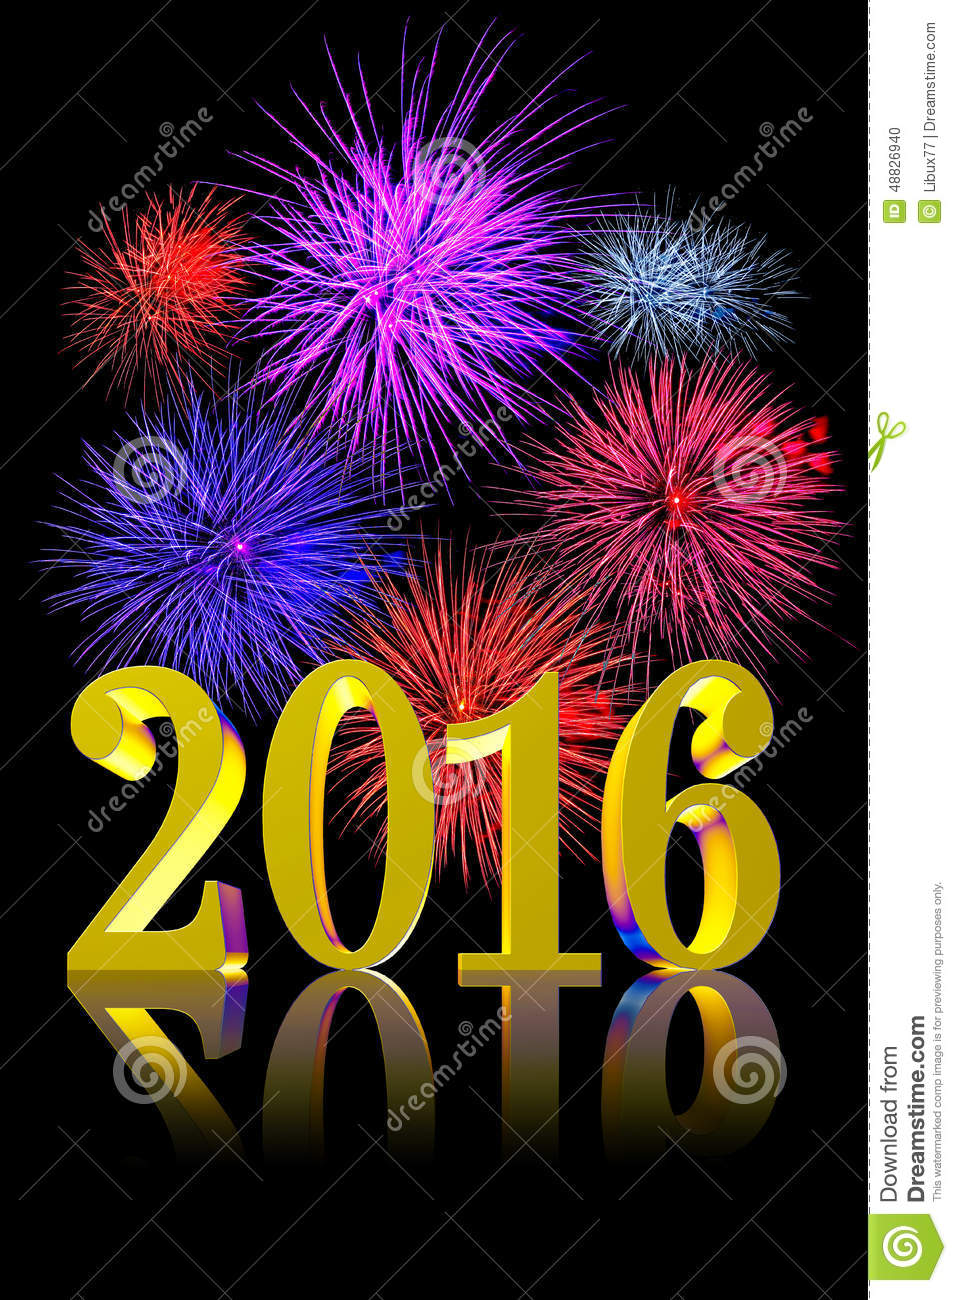 New Year 2016 Fireworks stock illustration. Illustration of annual ...